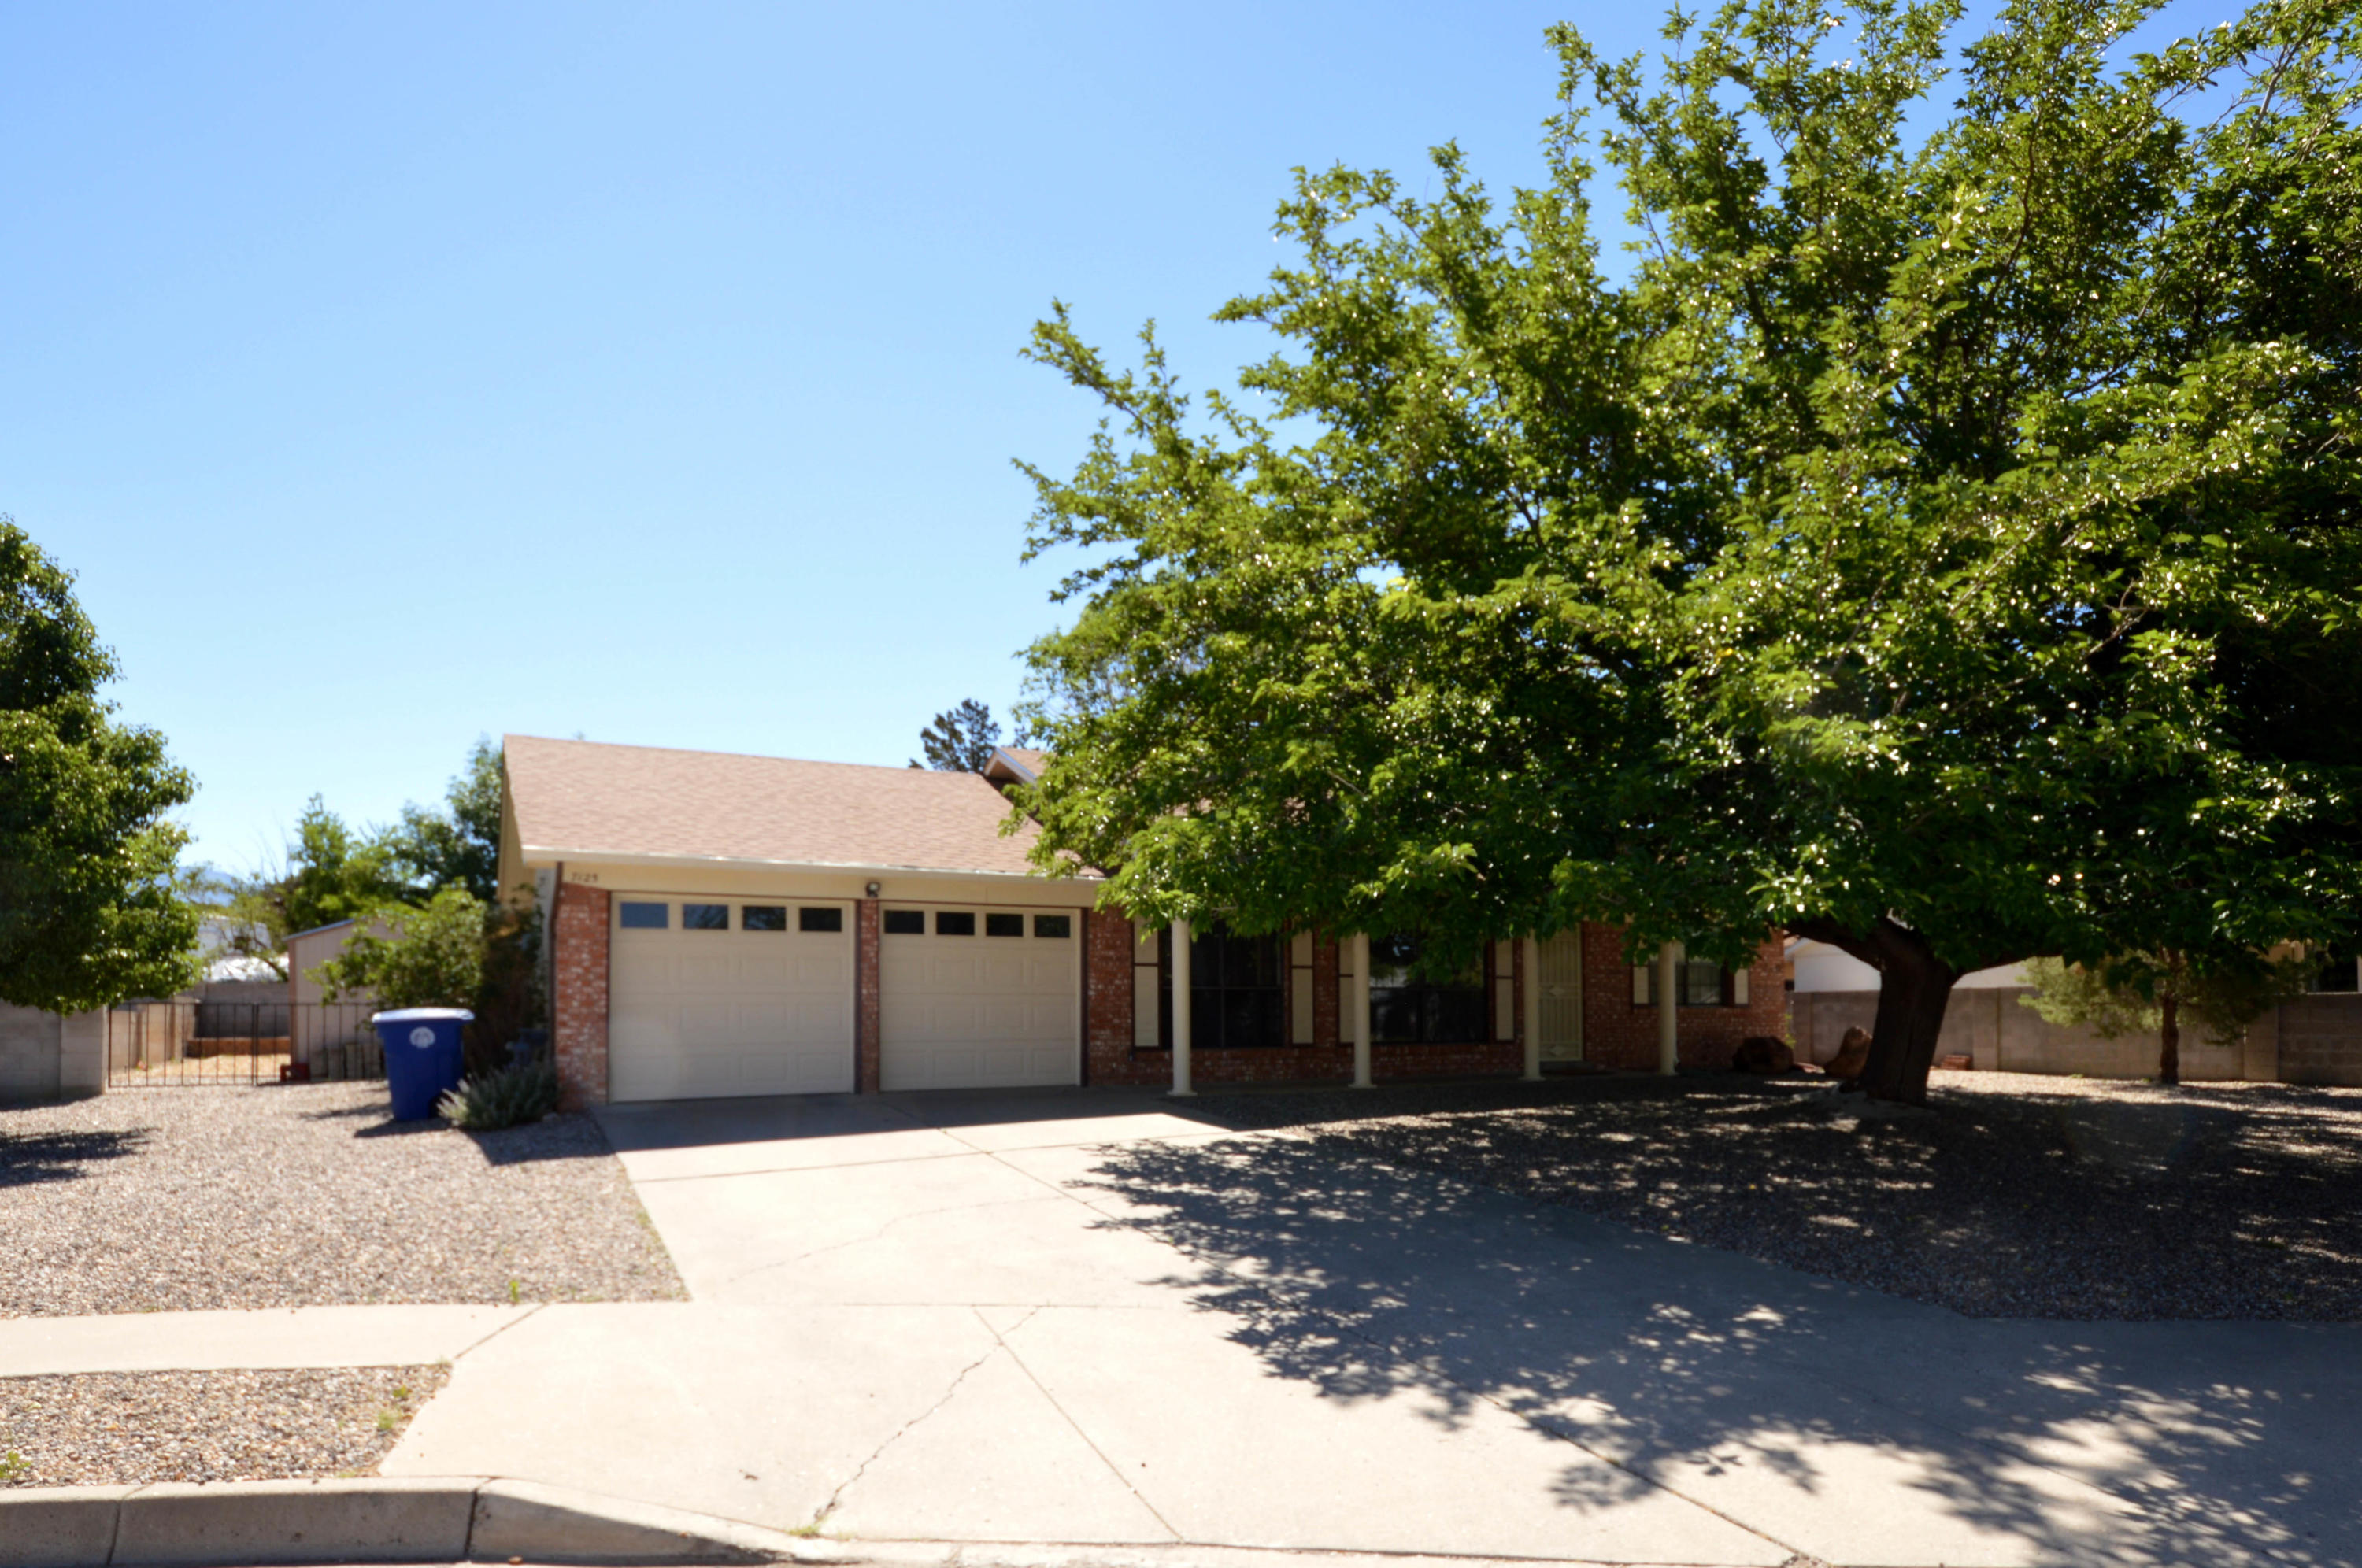 Located on a quiet cul-de-sac, this home has a spacious open floor plan with a large greatroom, kitchen with breakfast nook, dining room, 3 bedrooms and 2 baths. Home comes complete with all appliances including microwave, refrigerator and washer and dryer. There is an attached heated and cooled workshop/studio/rec room/office with counter cabinets and sink. Large backyard is highlighted by a covered patio, storage shed with power and gated backyard access. Home needs a little finish work including flooring throughout and wall covering in master bathroom.